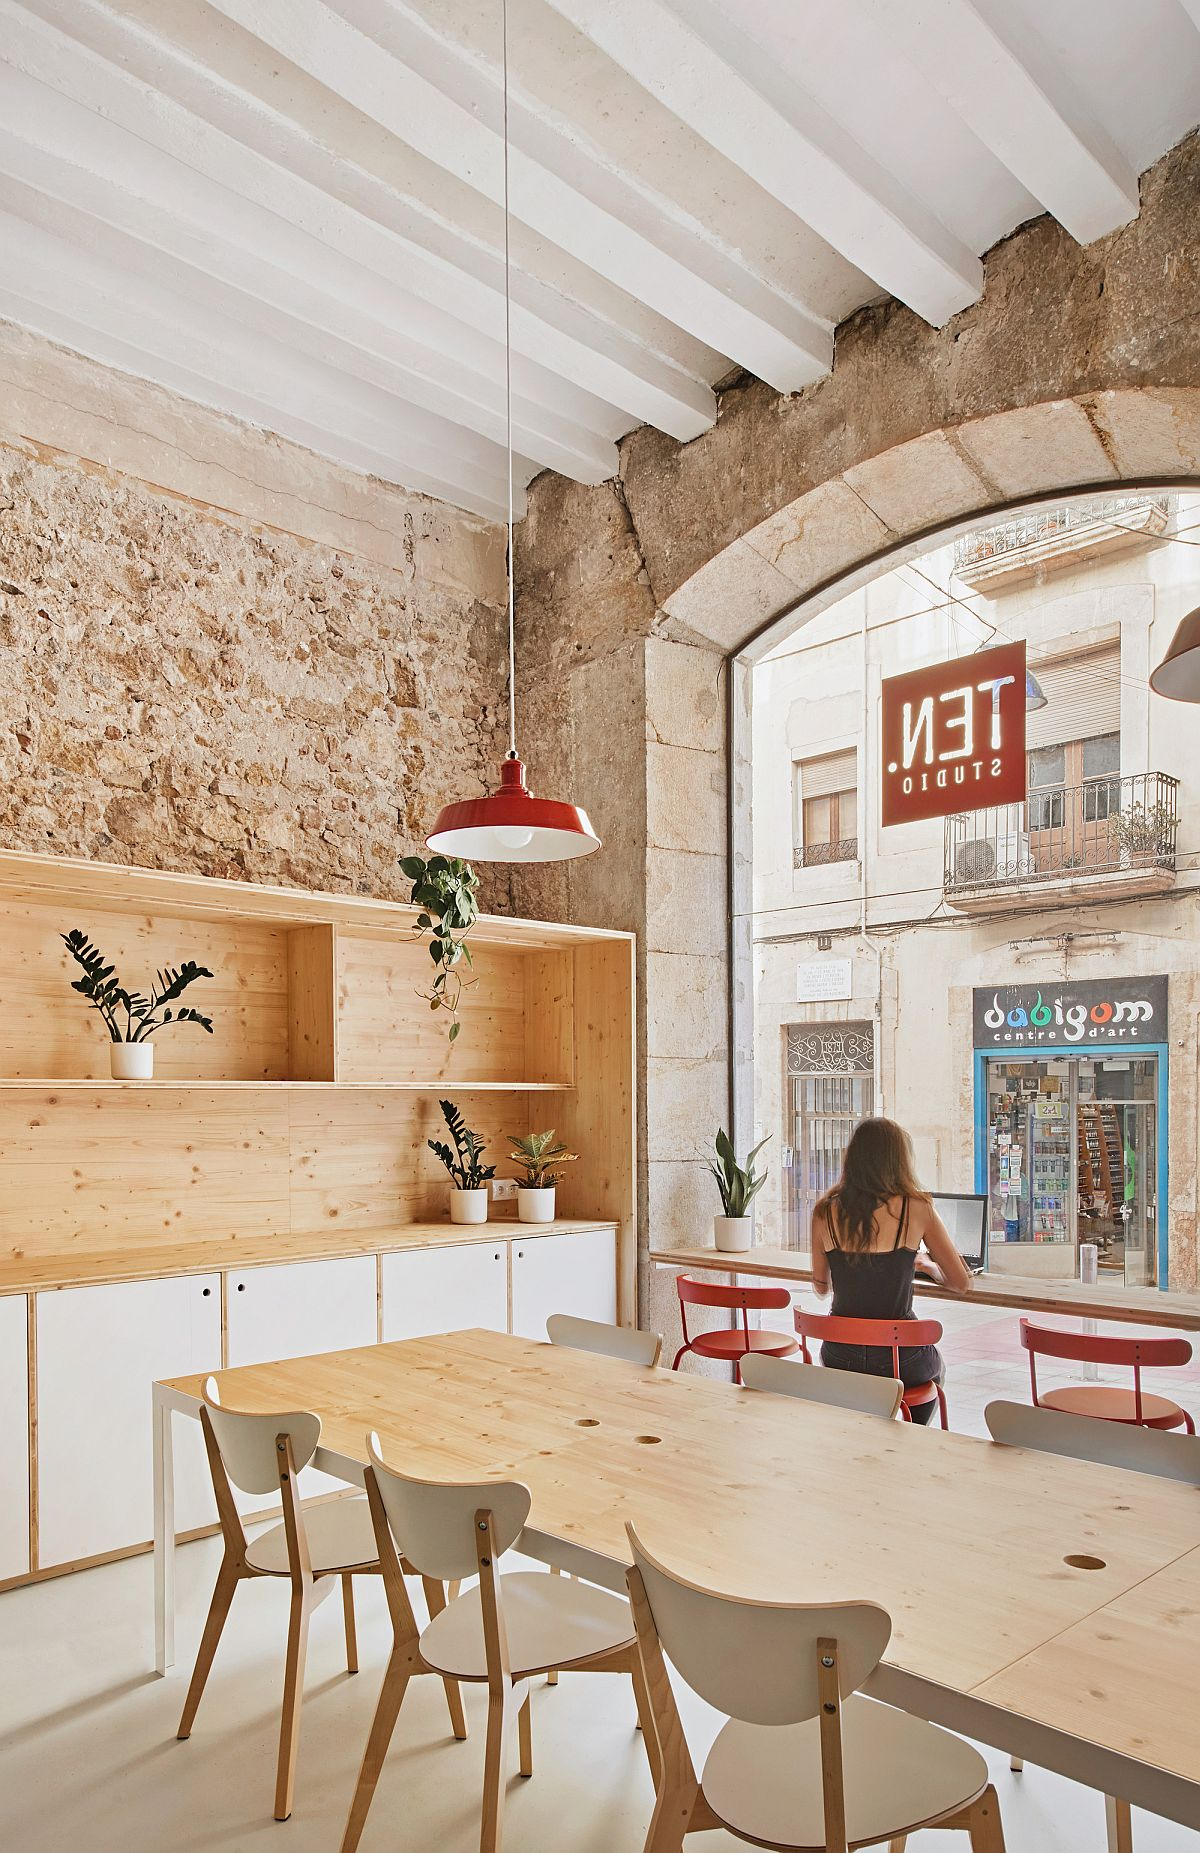 Exposed stone, brick and high ceilings give this office in Spain a unique interior